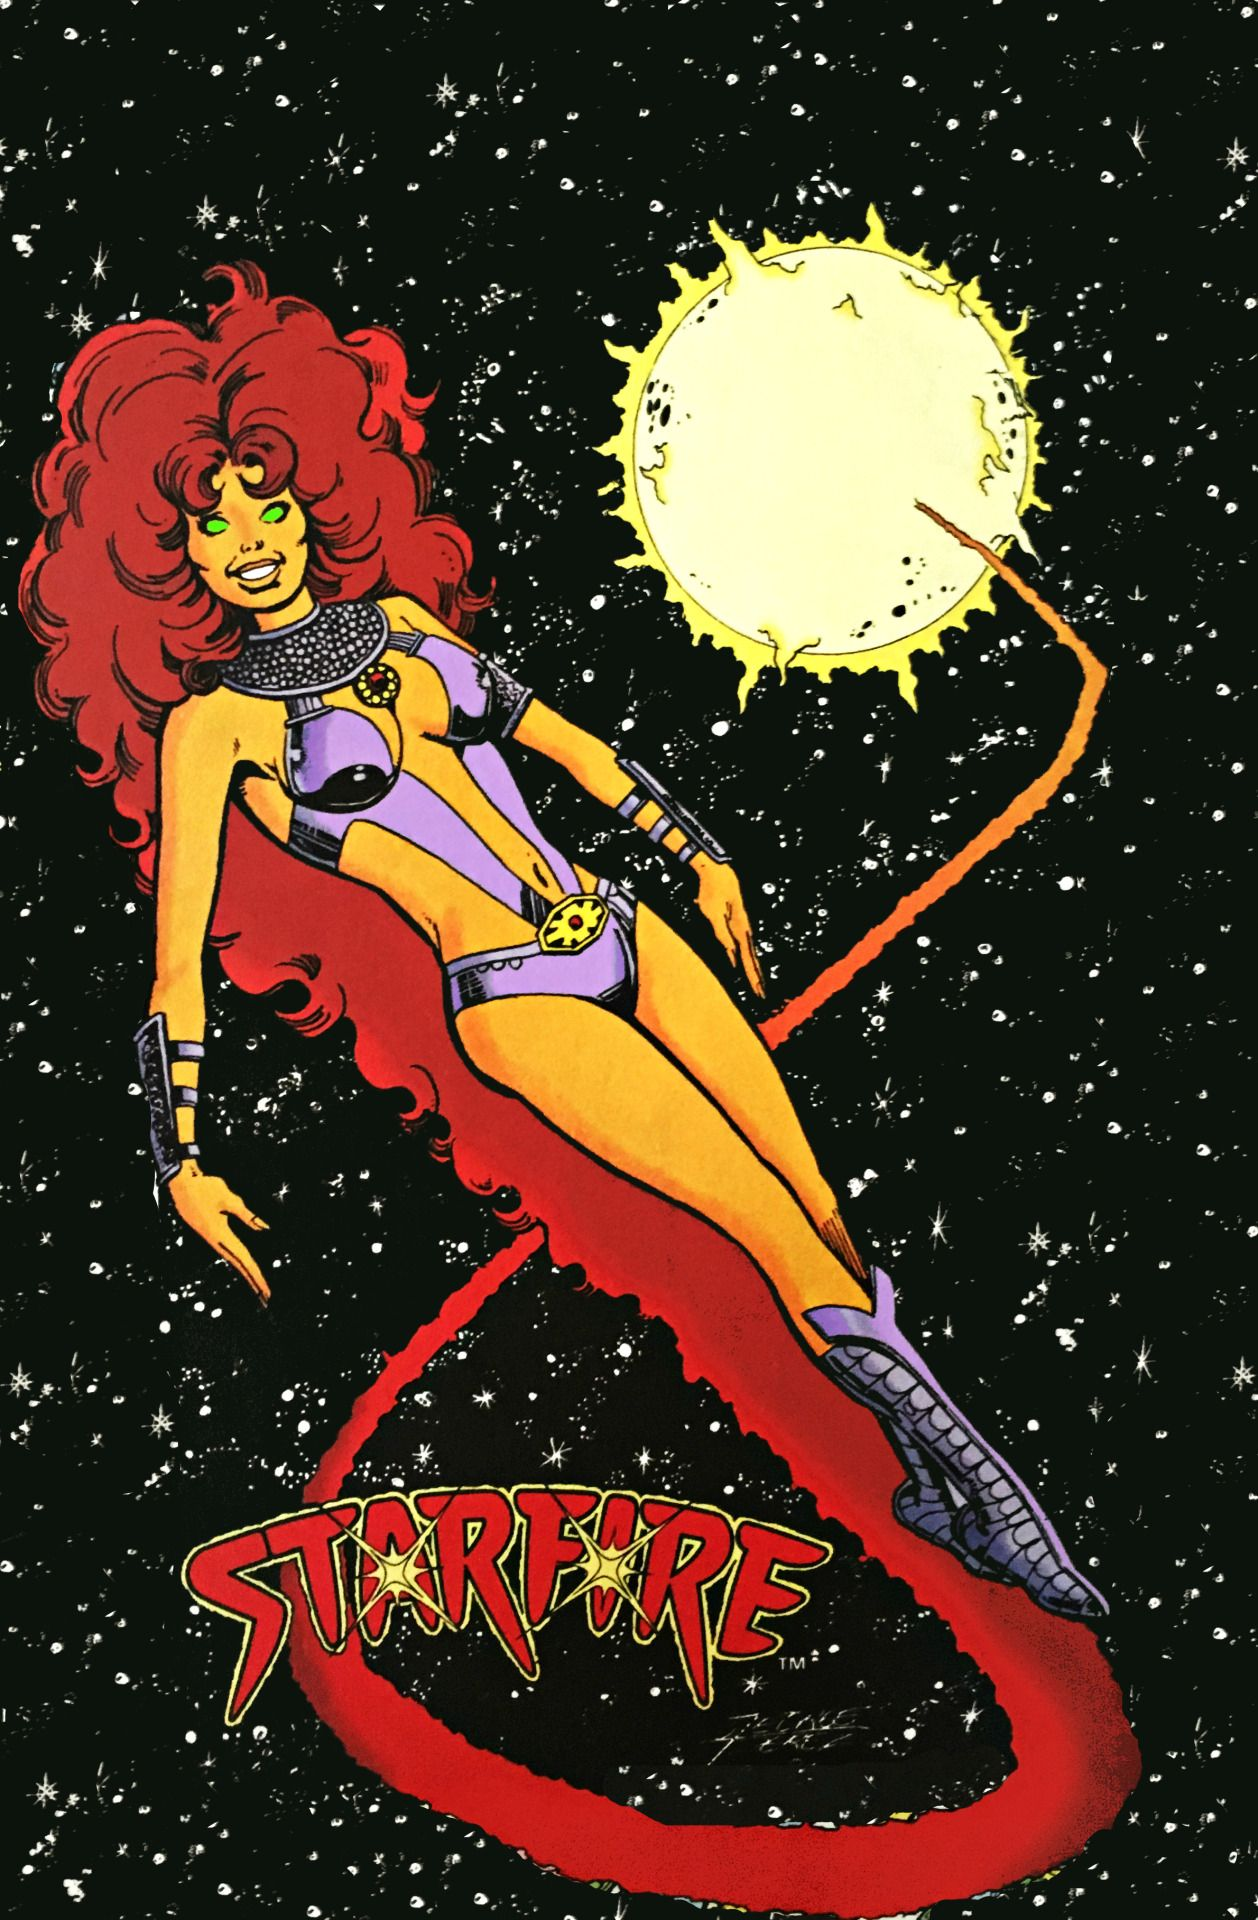 Starfire in the comic